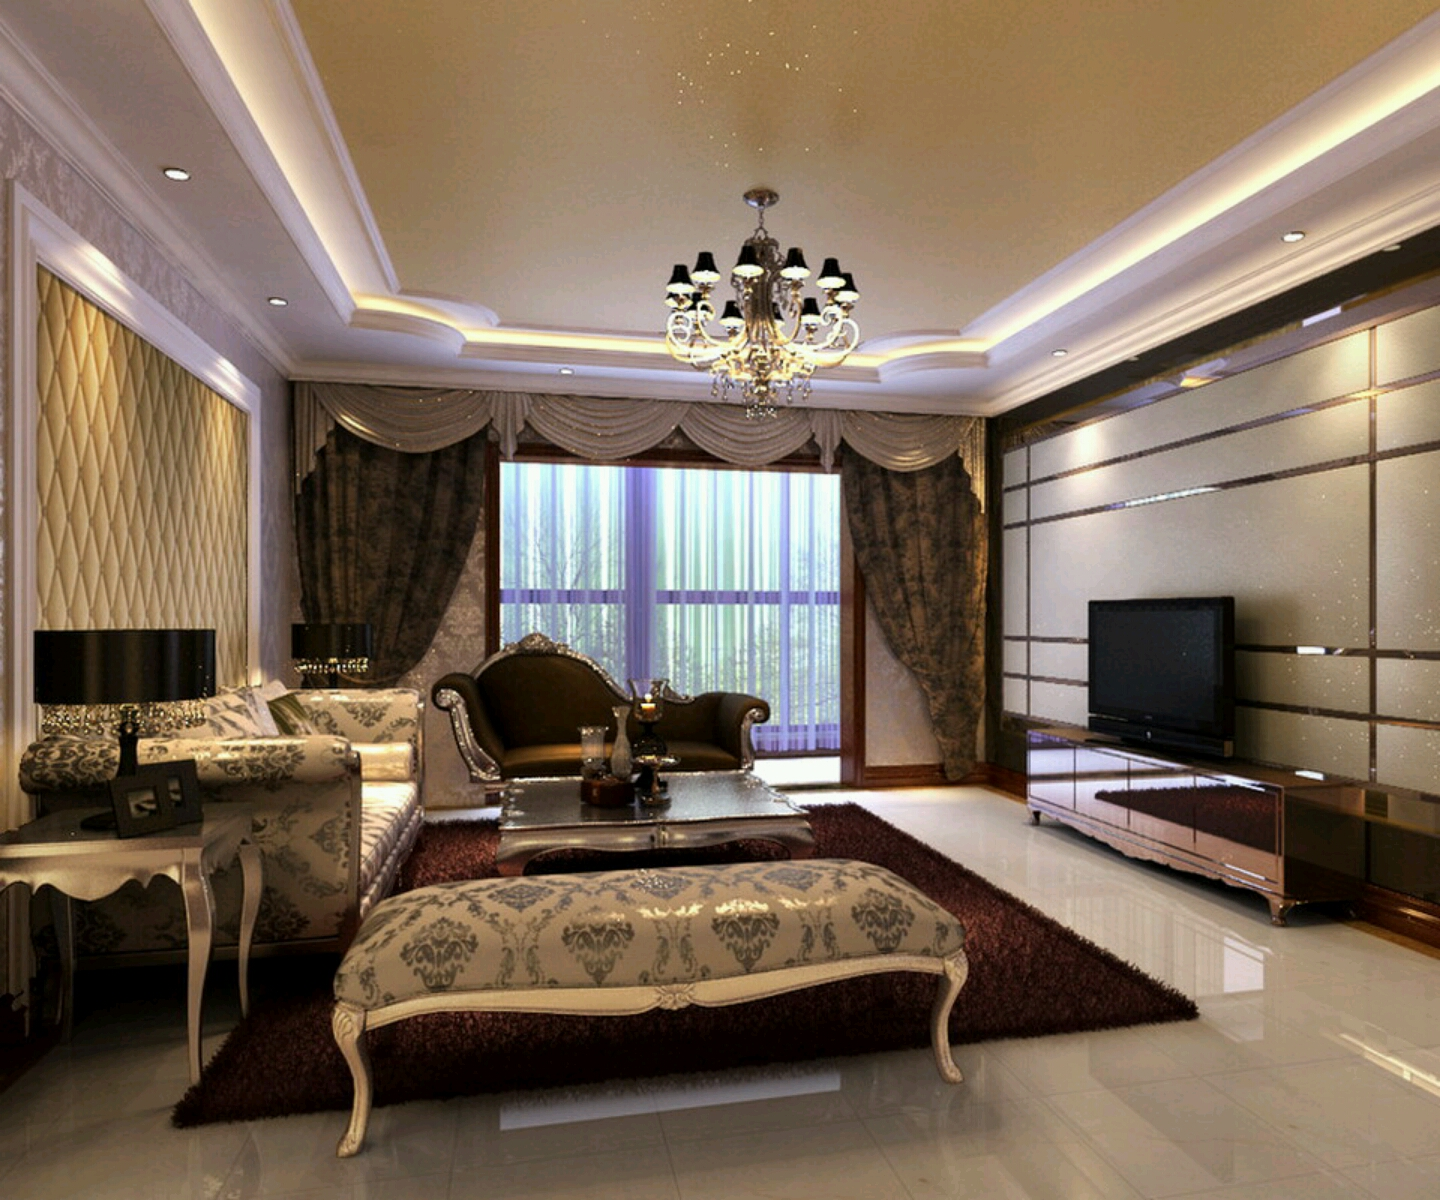 Interior decorating ideas living rooms dream house for Interior design my living room